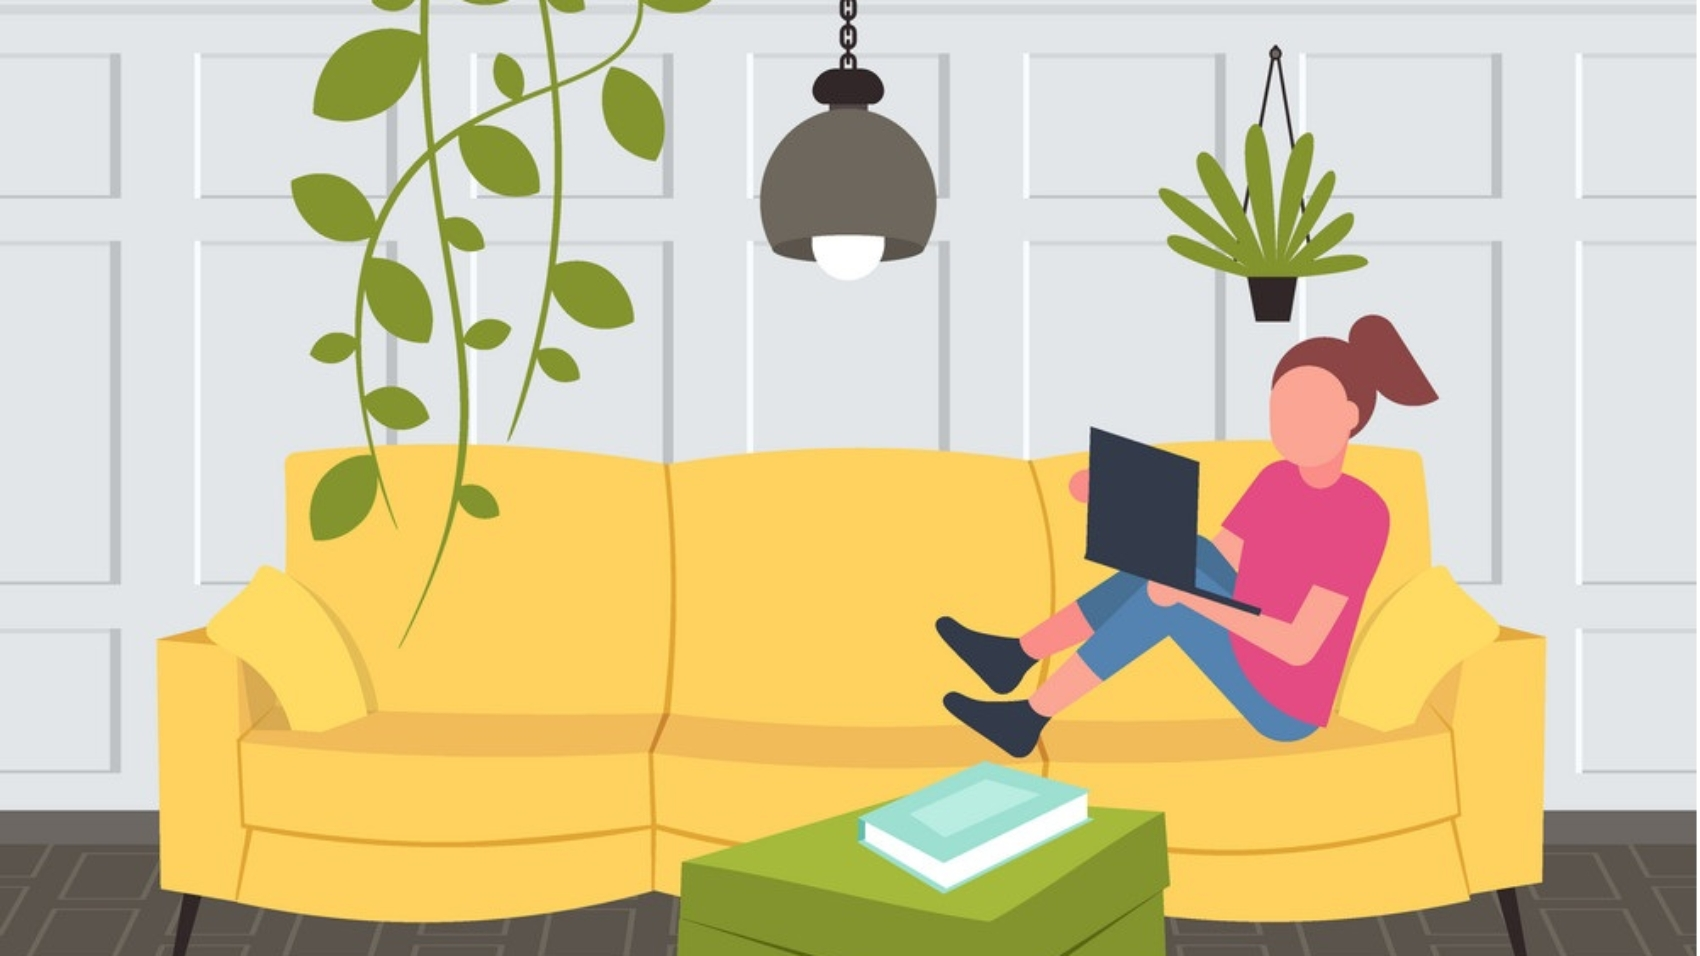 woman sitting on couch girl using laptop contemporary living room interior home modern apartment design flat horizontal full length vector illustration